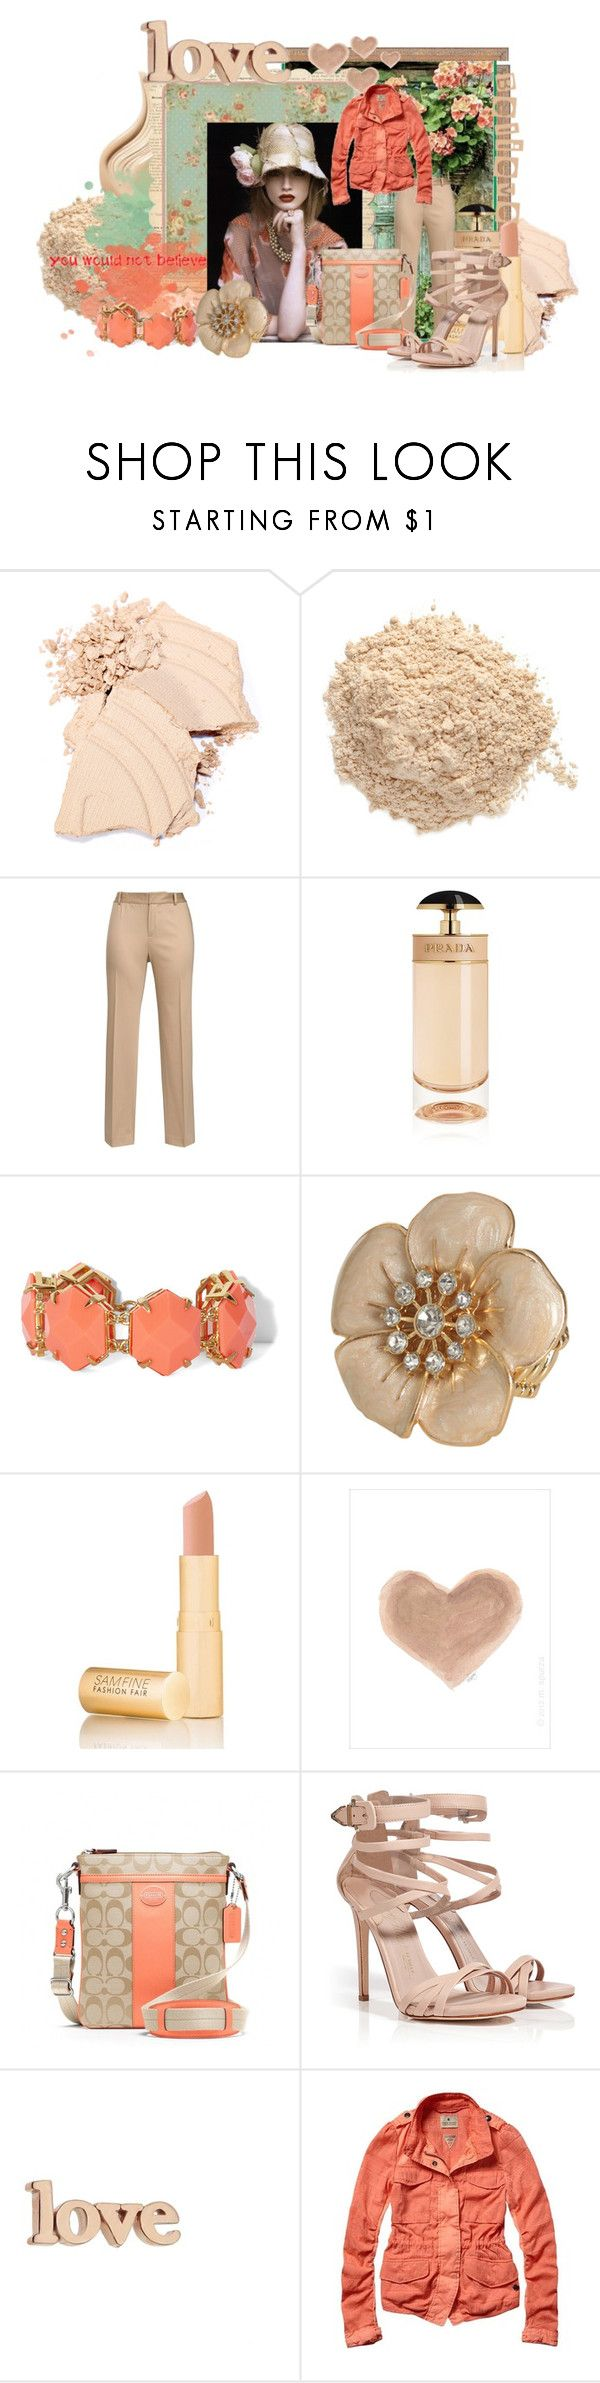 """""""Floral Tribute"""" by summersprinkle ❤ liked on Polyvore featuring Le Métier de Beauté, Lauren Ralph Lauren, Prada, Vince Camuto, Wet Seal, Fashion Fair, French Country, TEN, Coach and Le Silla"""